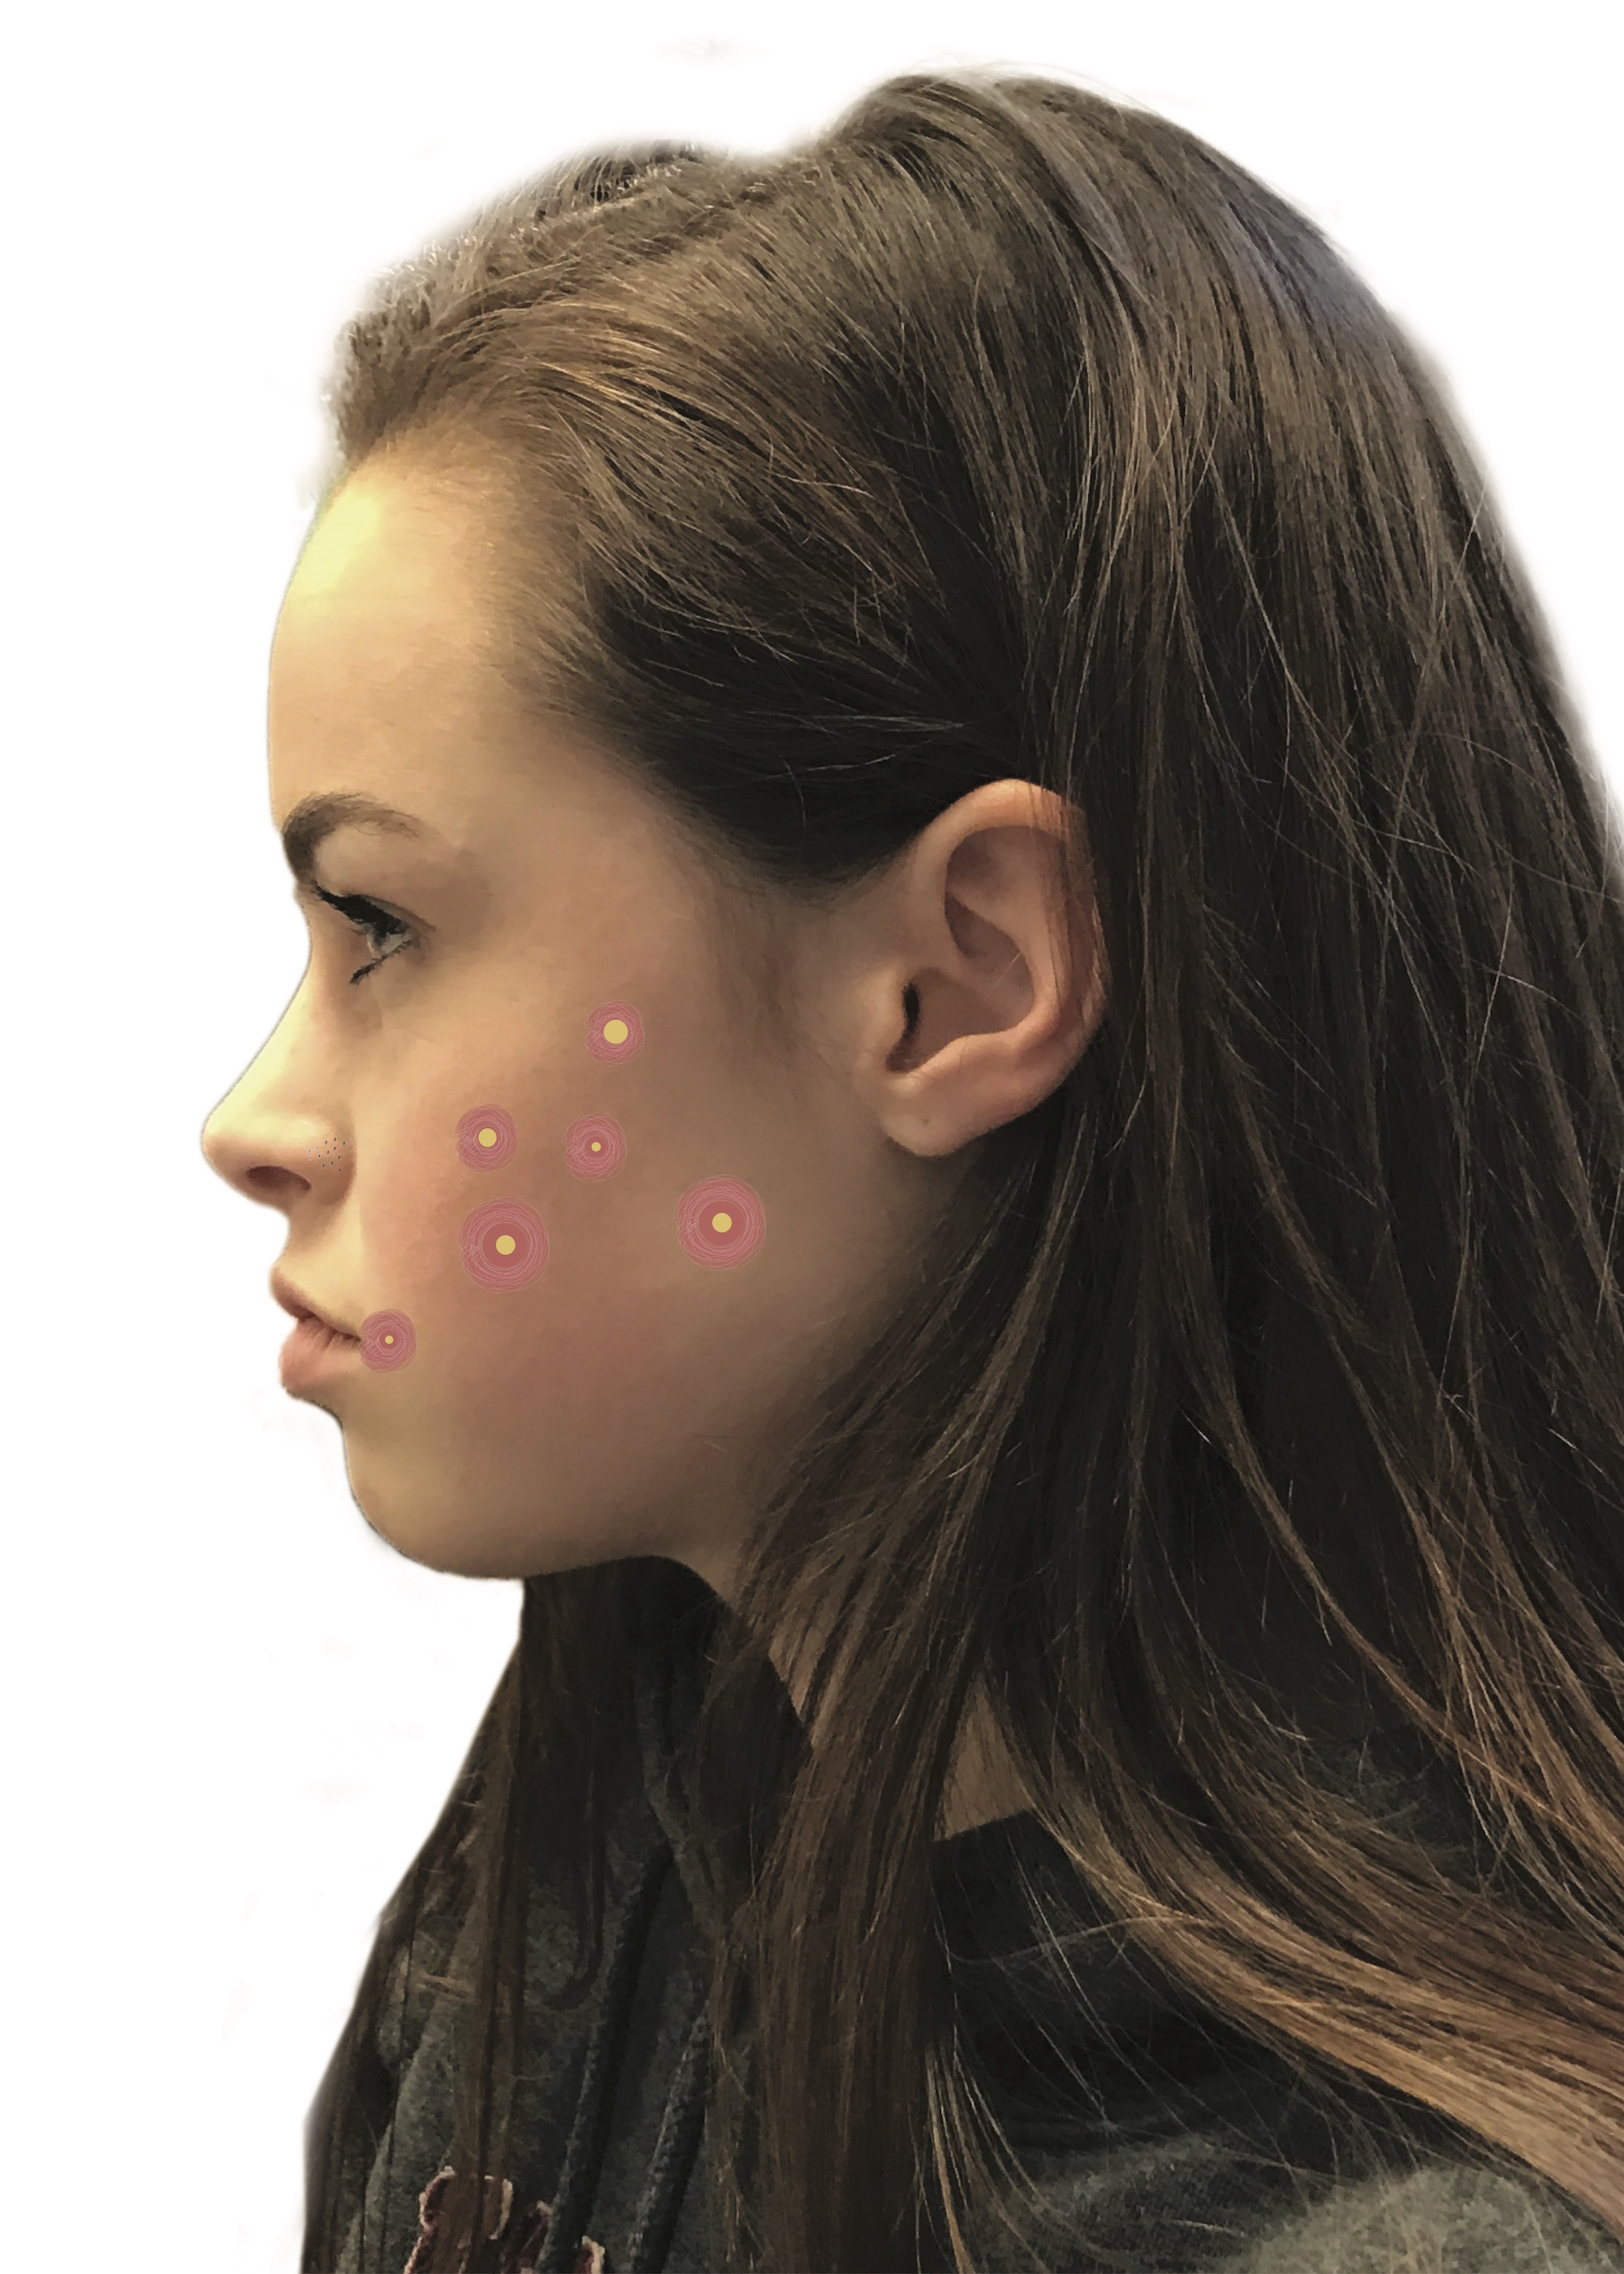 Acne, a chronic inflammatory skin condition, is characterized by blackheads, whiteheads, pimples and deeper lumps that occur on the face, neck, chest, back, shoulders and upper arms.